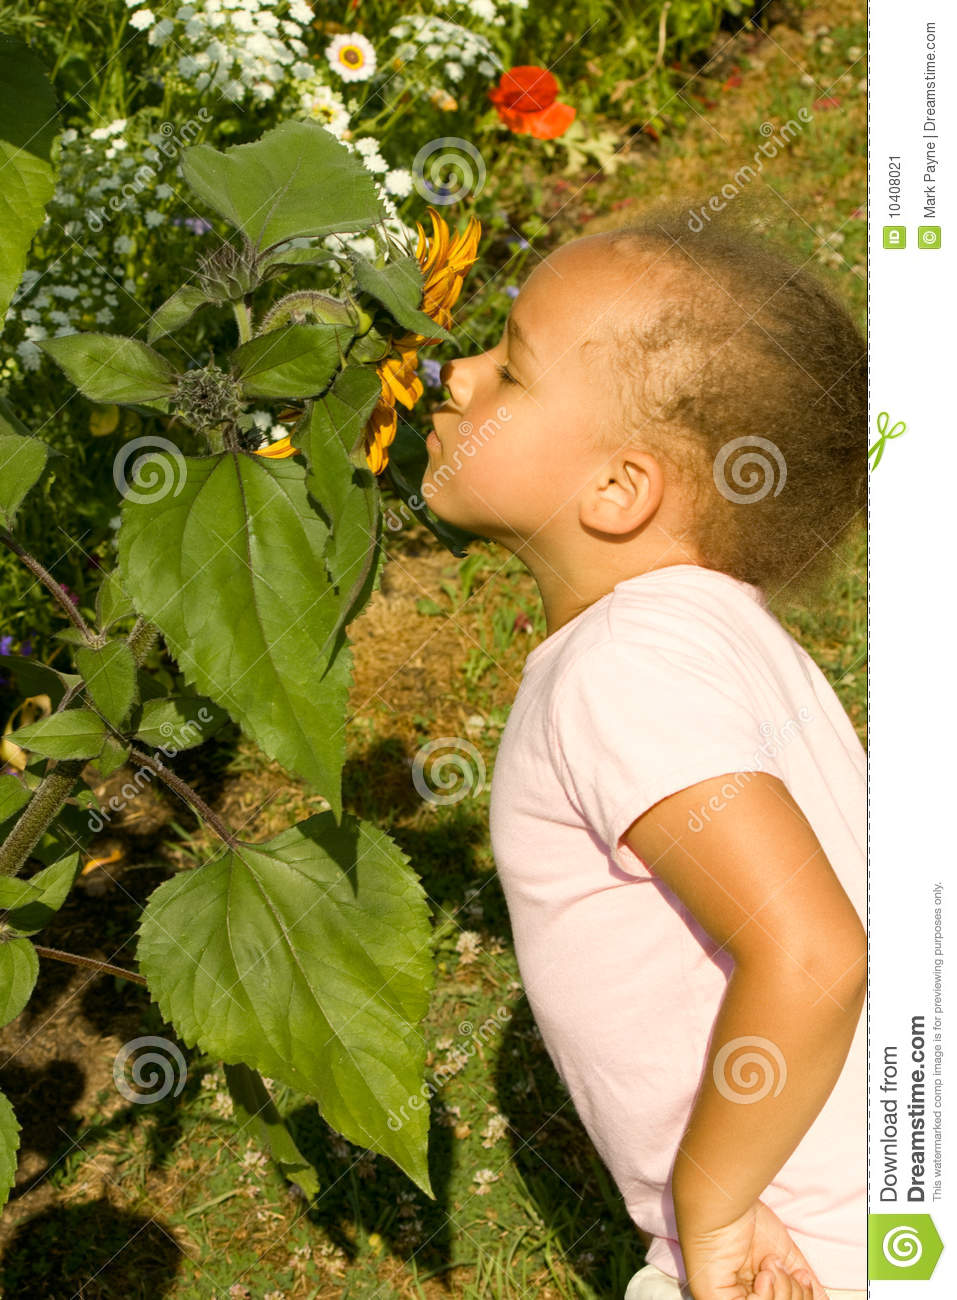 Young Ethnic Girl smelling the flowers